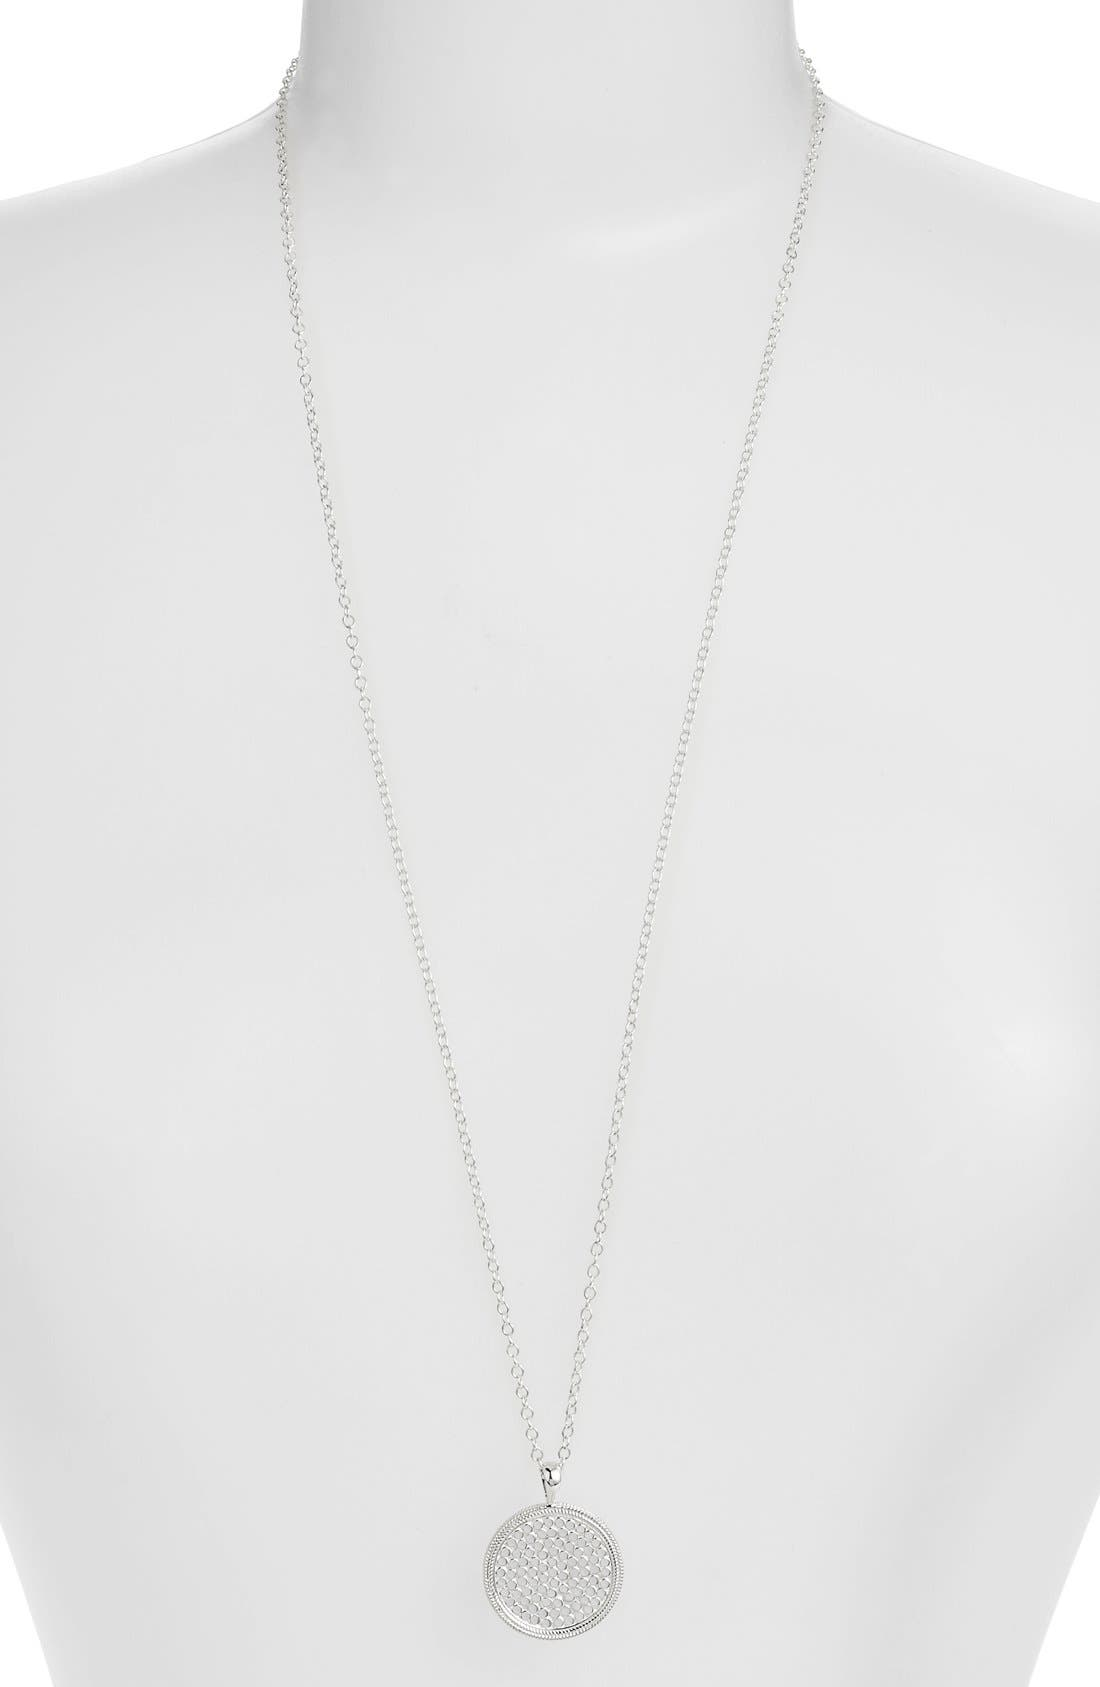 Main Image - Anna Beck 'Gili' Pendant Necklace